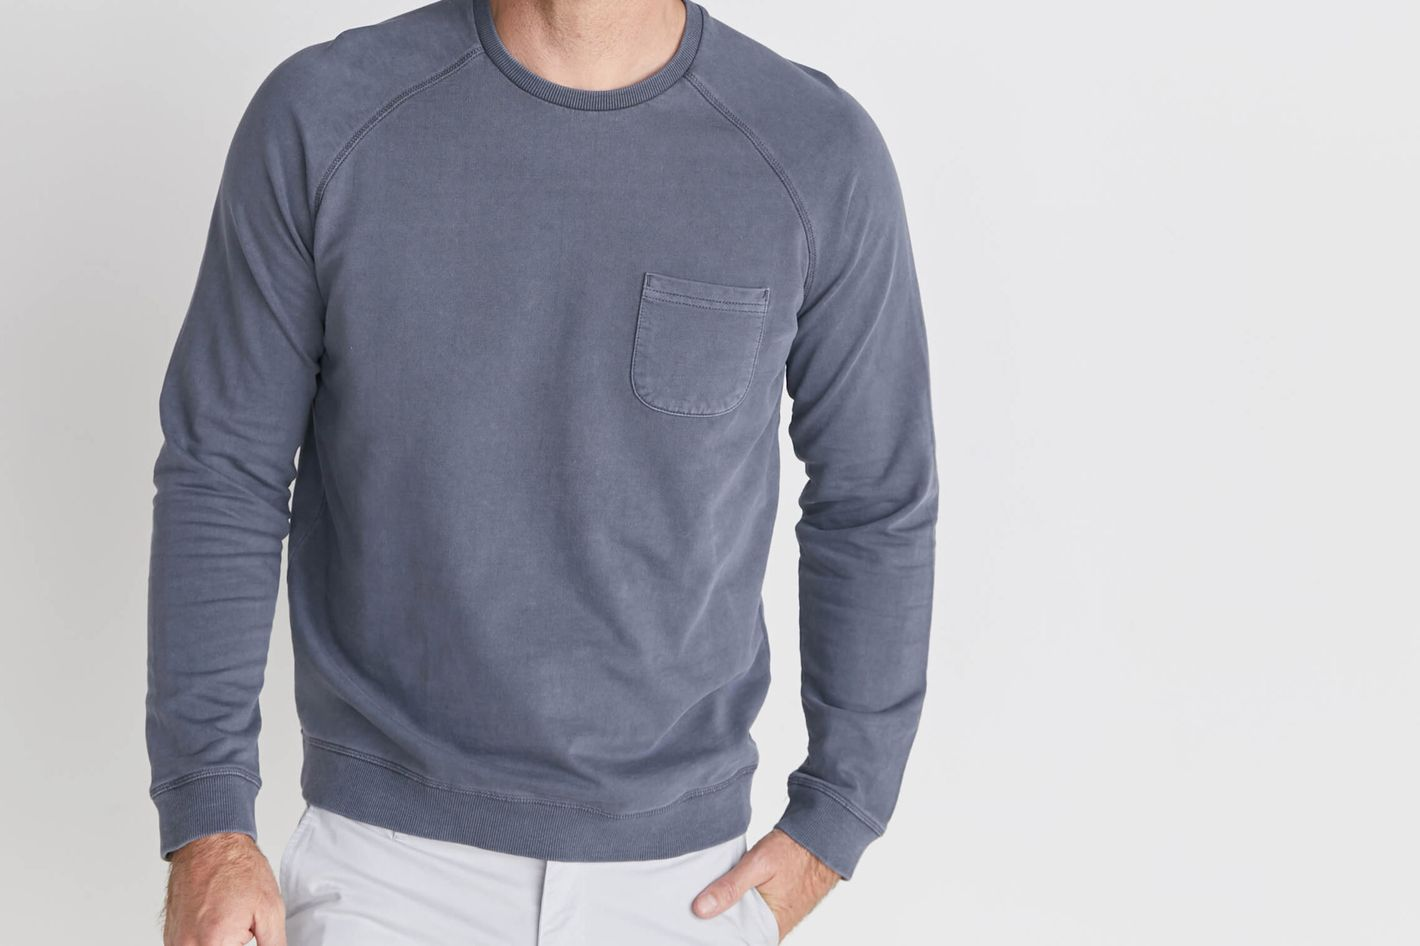 6b40c7ea5cf5 10 Best Crewneck Sweatshirts for Men 2018